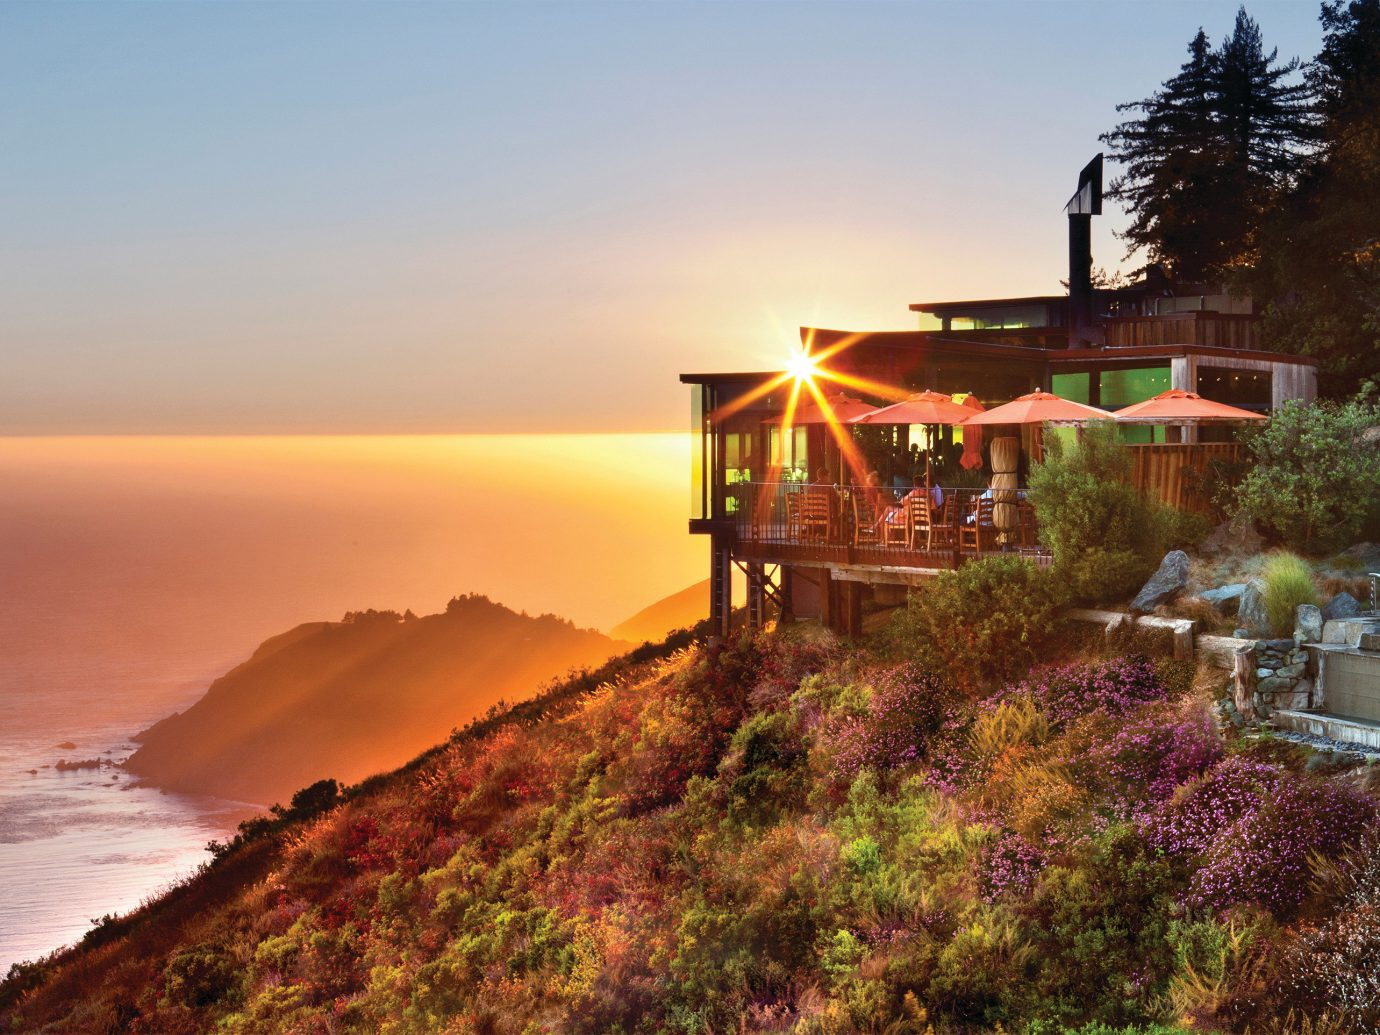 Exterior view during sunset at Sierra Mar, Big Sur, CA